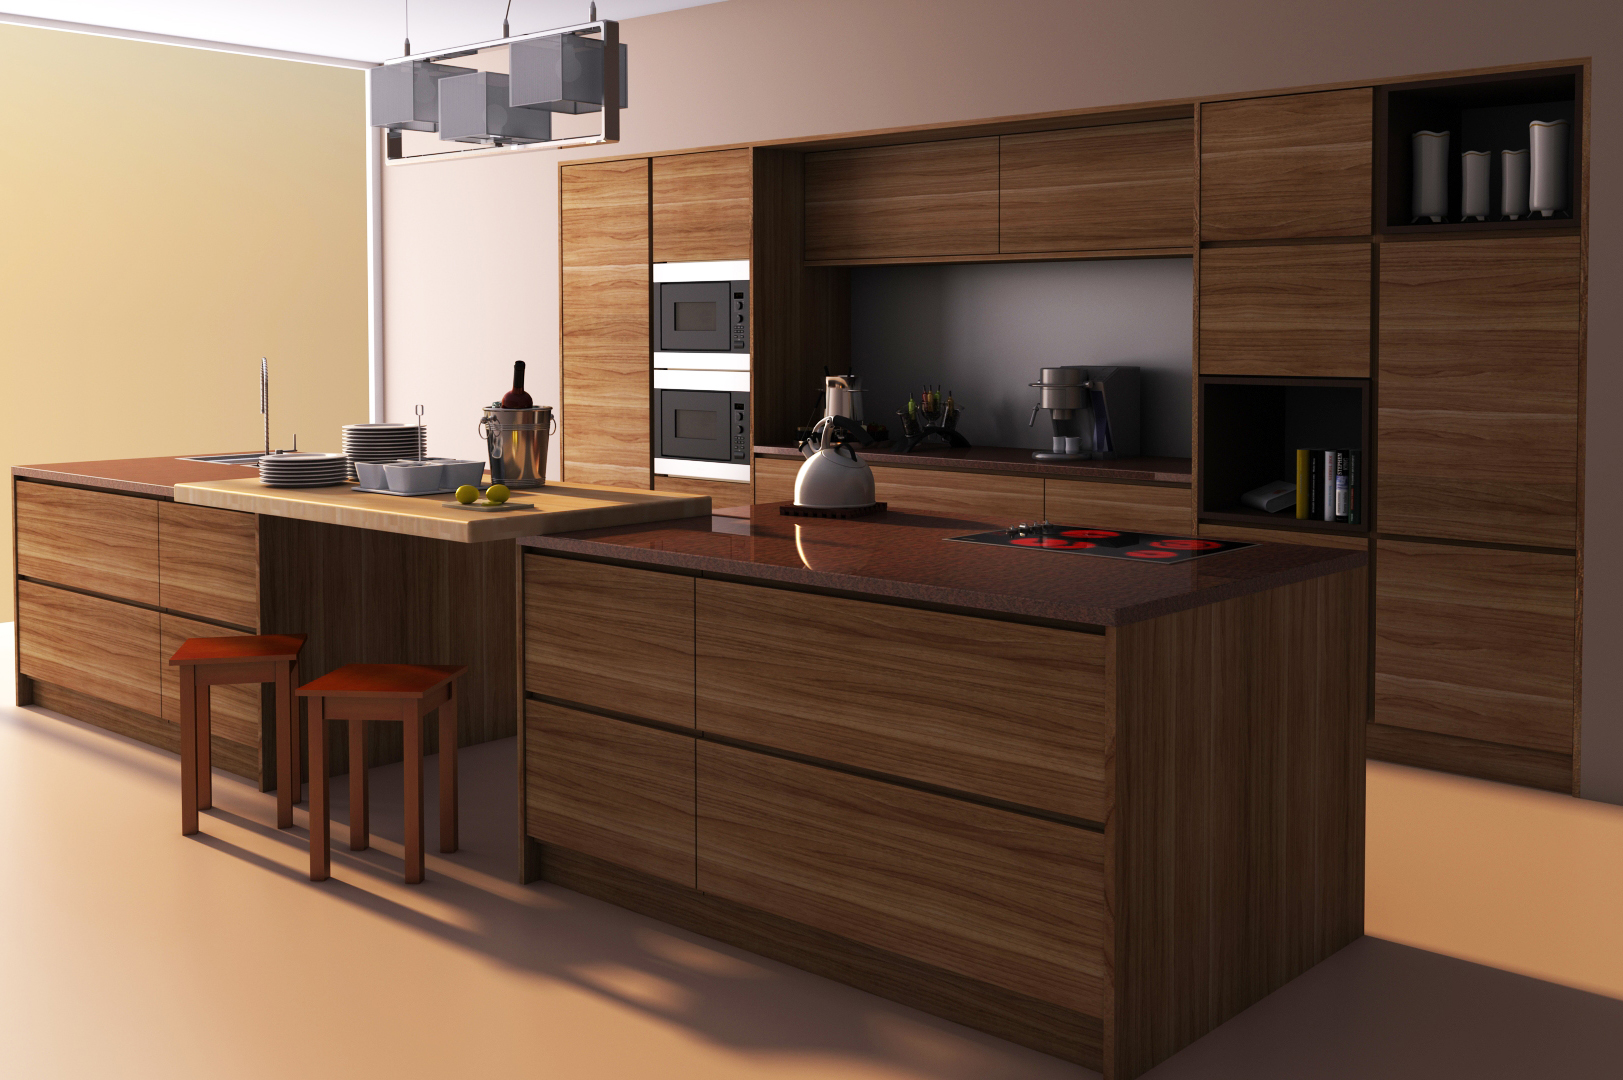 Modern kitchen 3d model max for New model kitchen